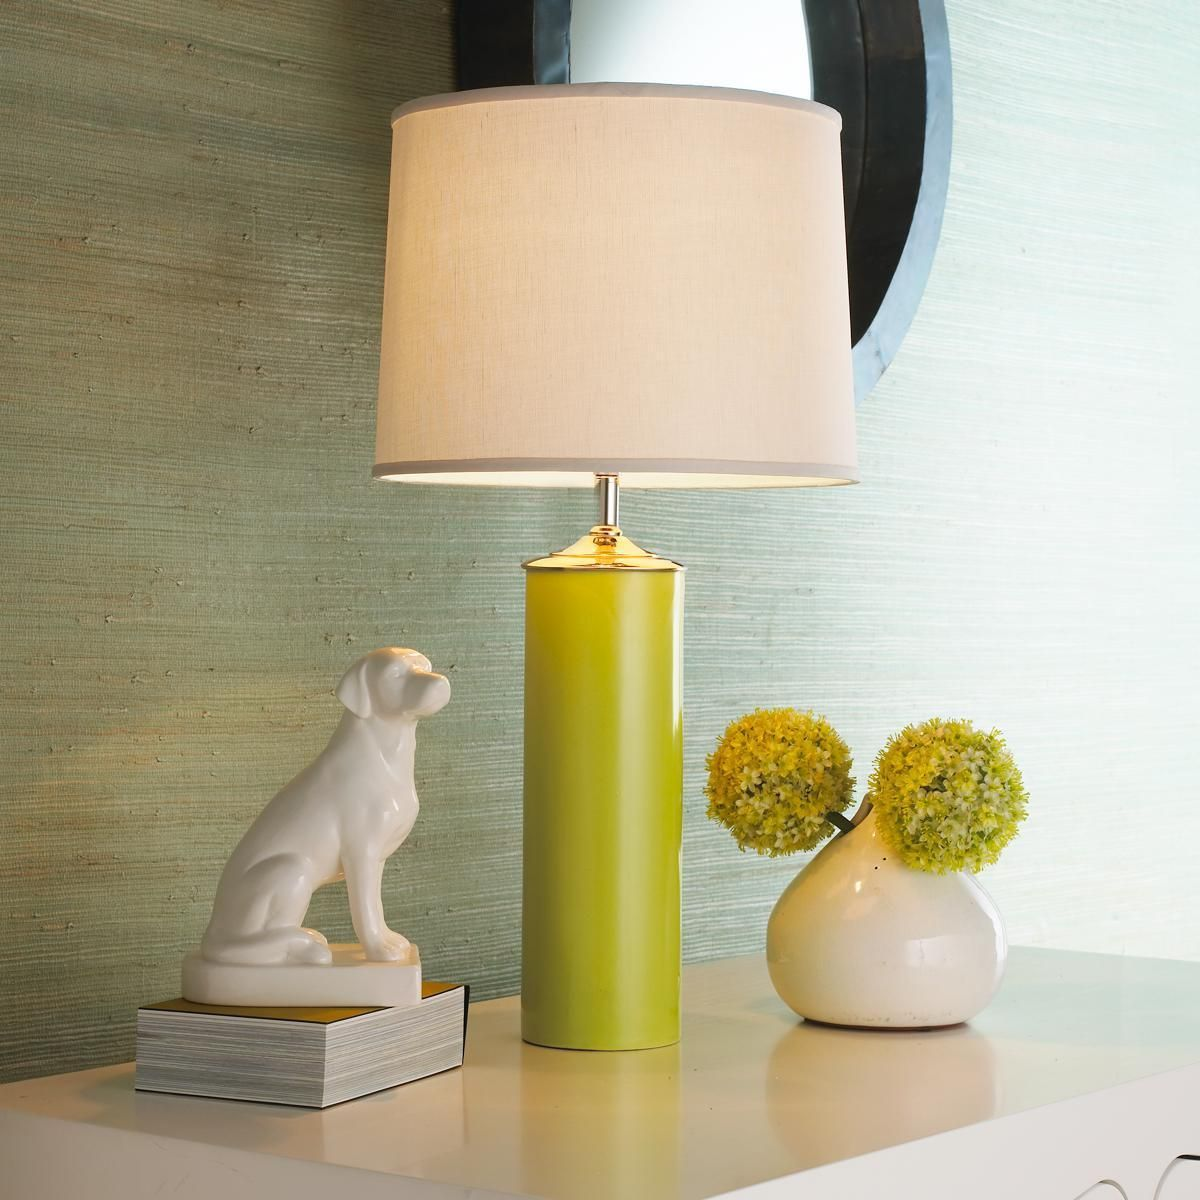 5 Simple Tips and Tricks Lamp Shades Redo Beach rustic